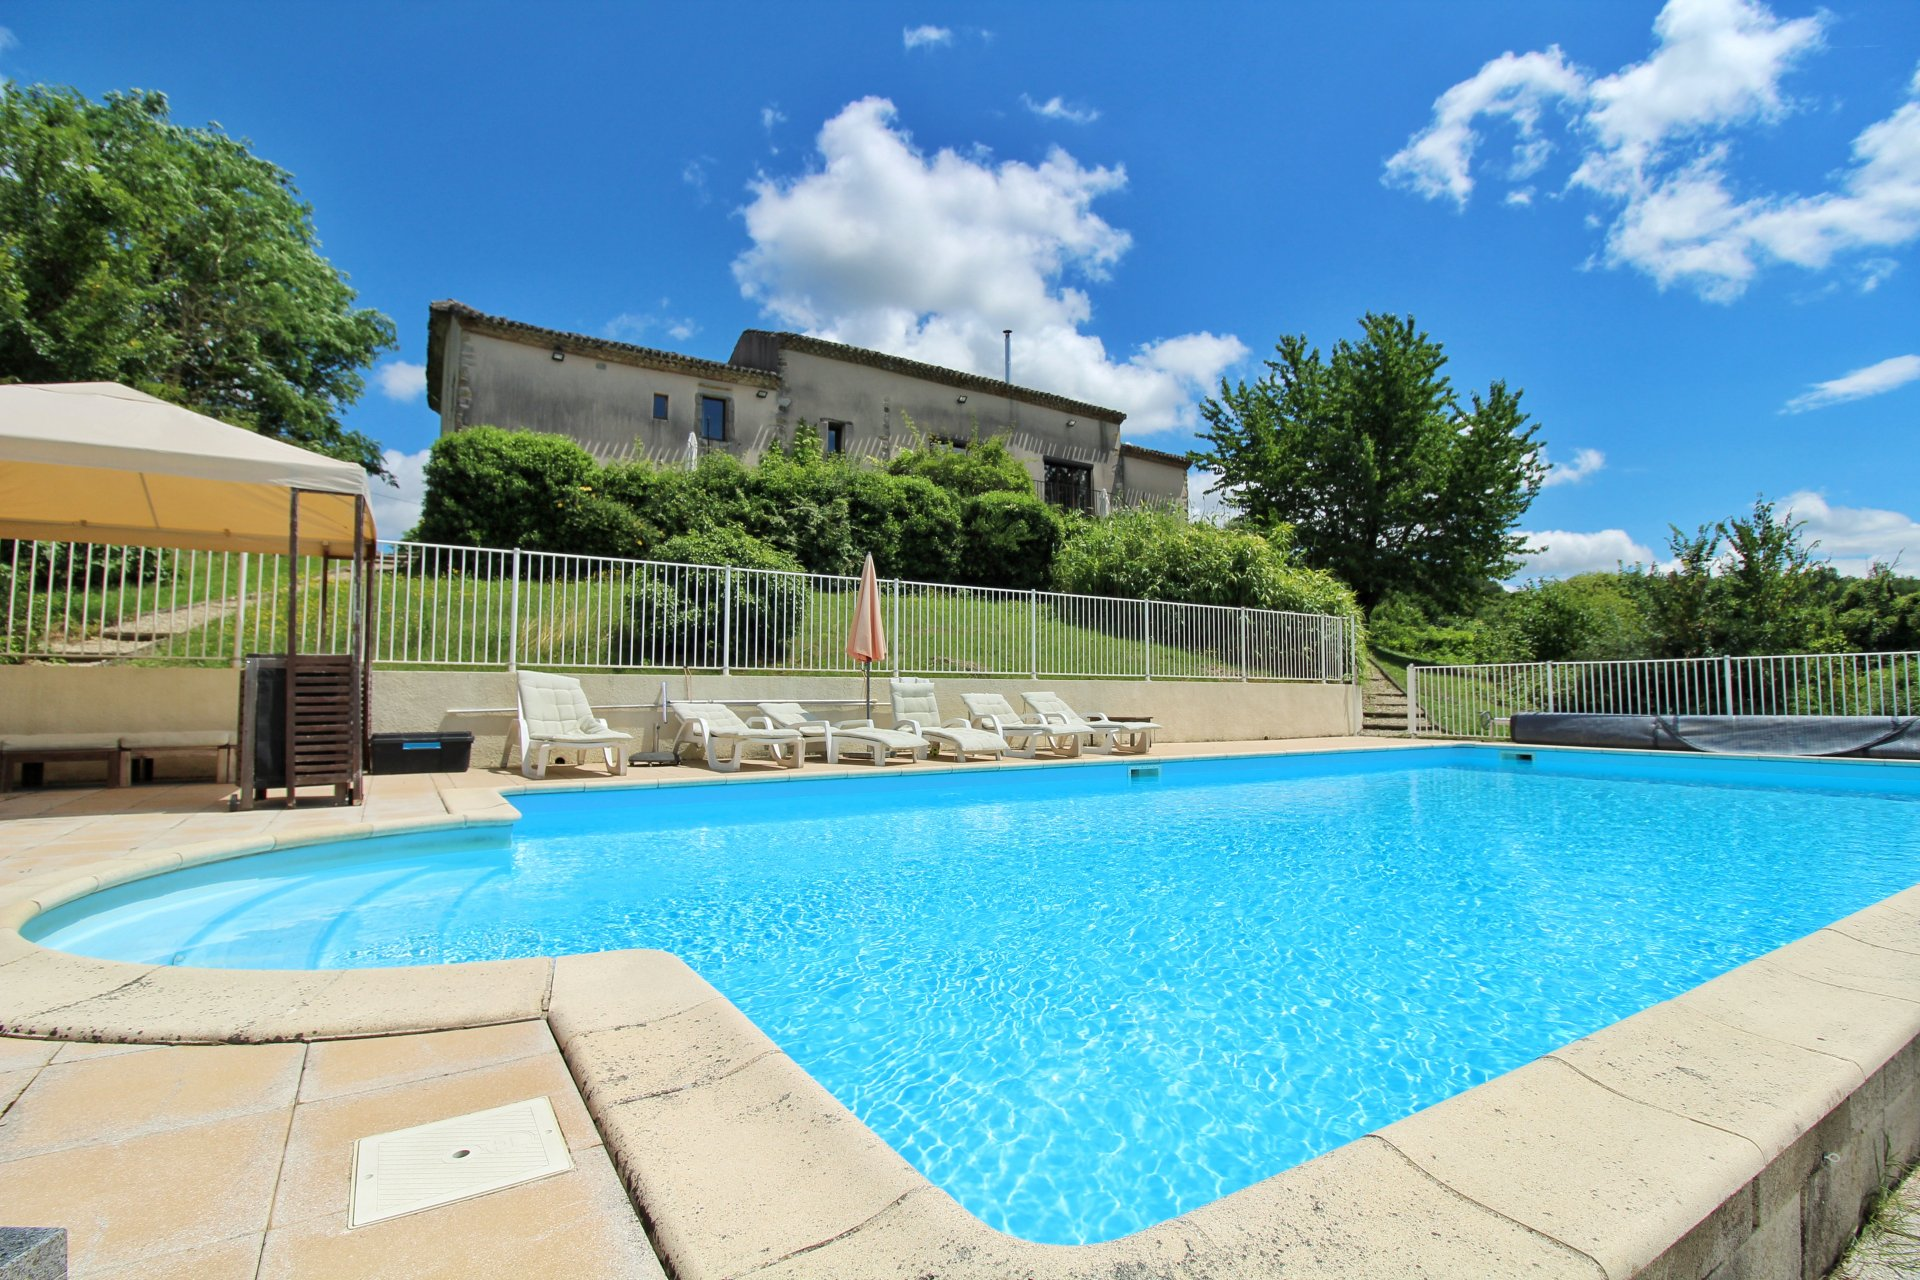 Fantastic Lifestyle Property with Income Potential!